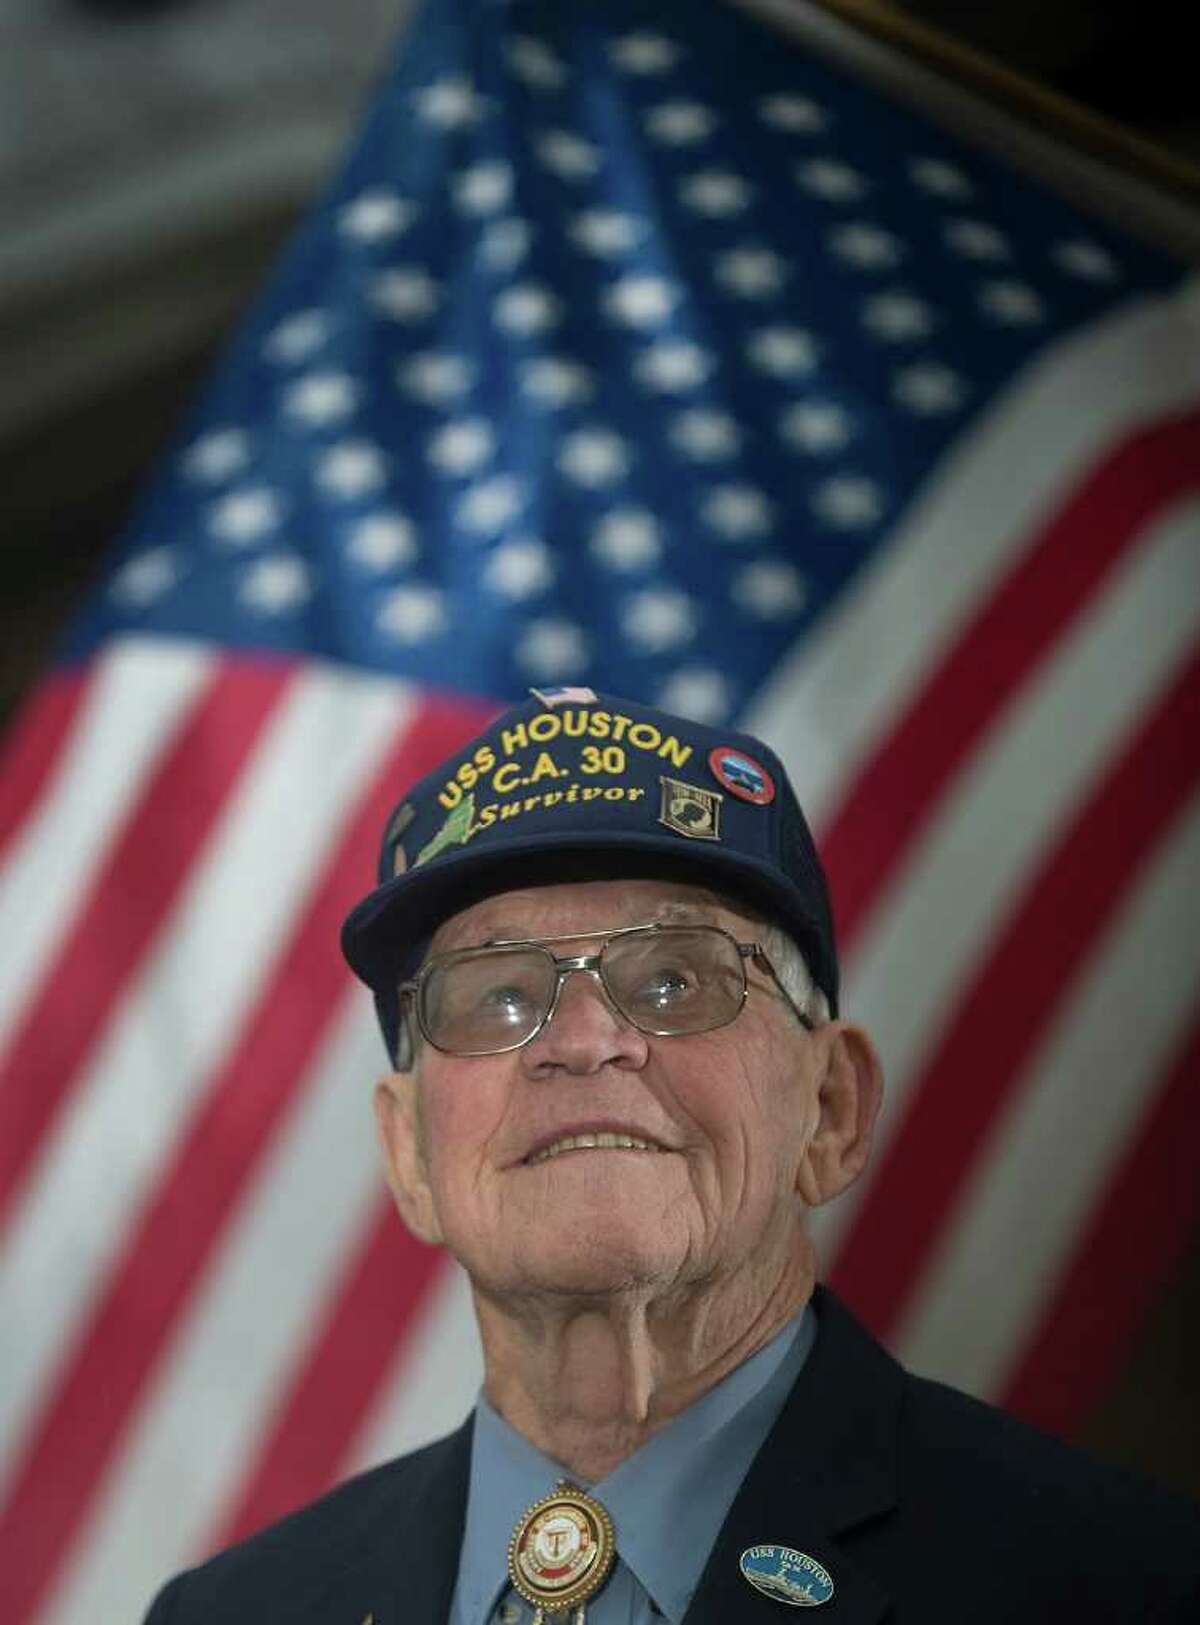 Howard Brooks, now 92, is coming from Mount Laurel, N.J., for the USS Houston ceremony.